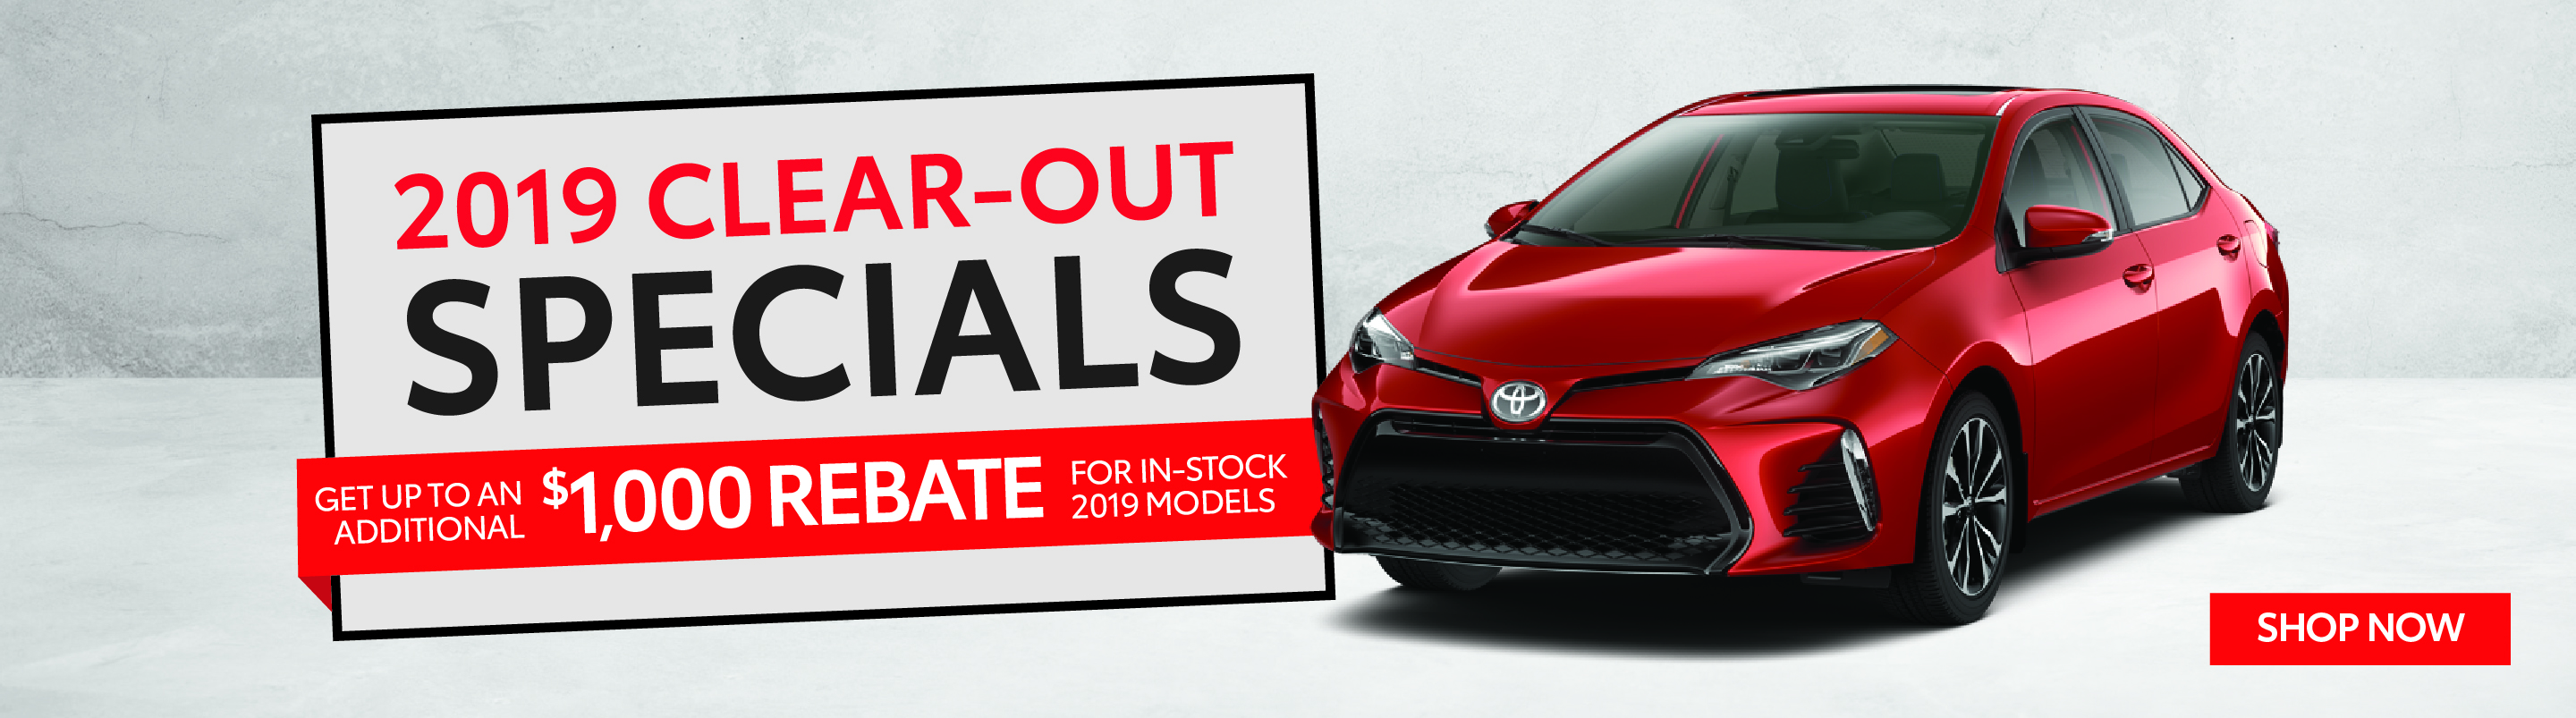 2019 Clearout Specials - Goderich Toyota